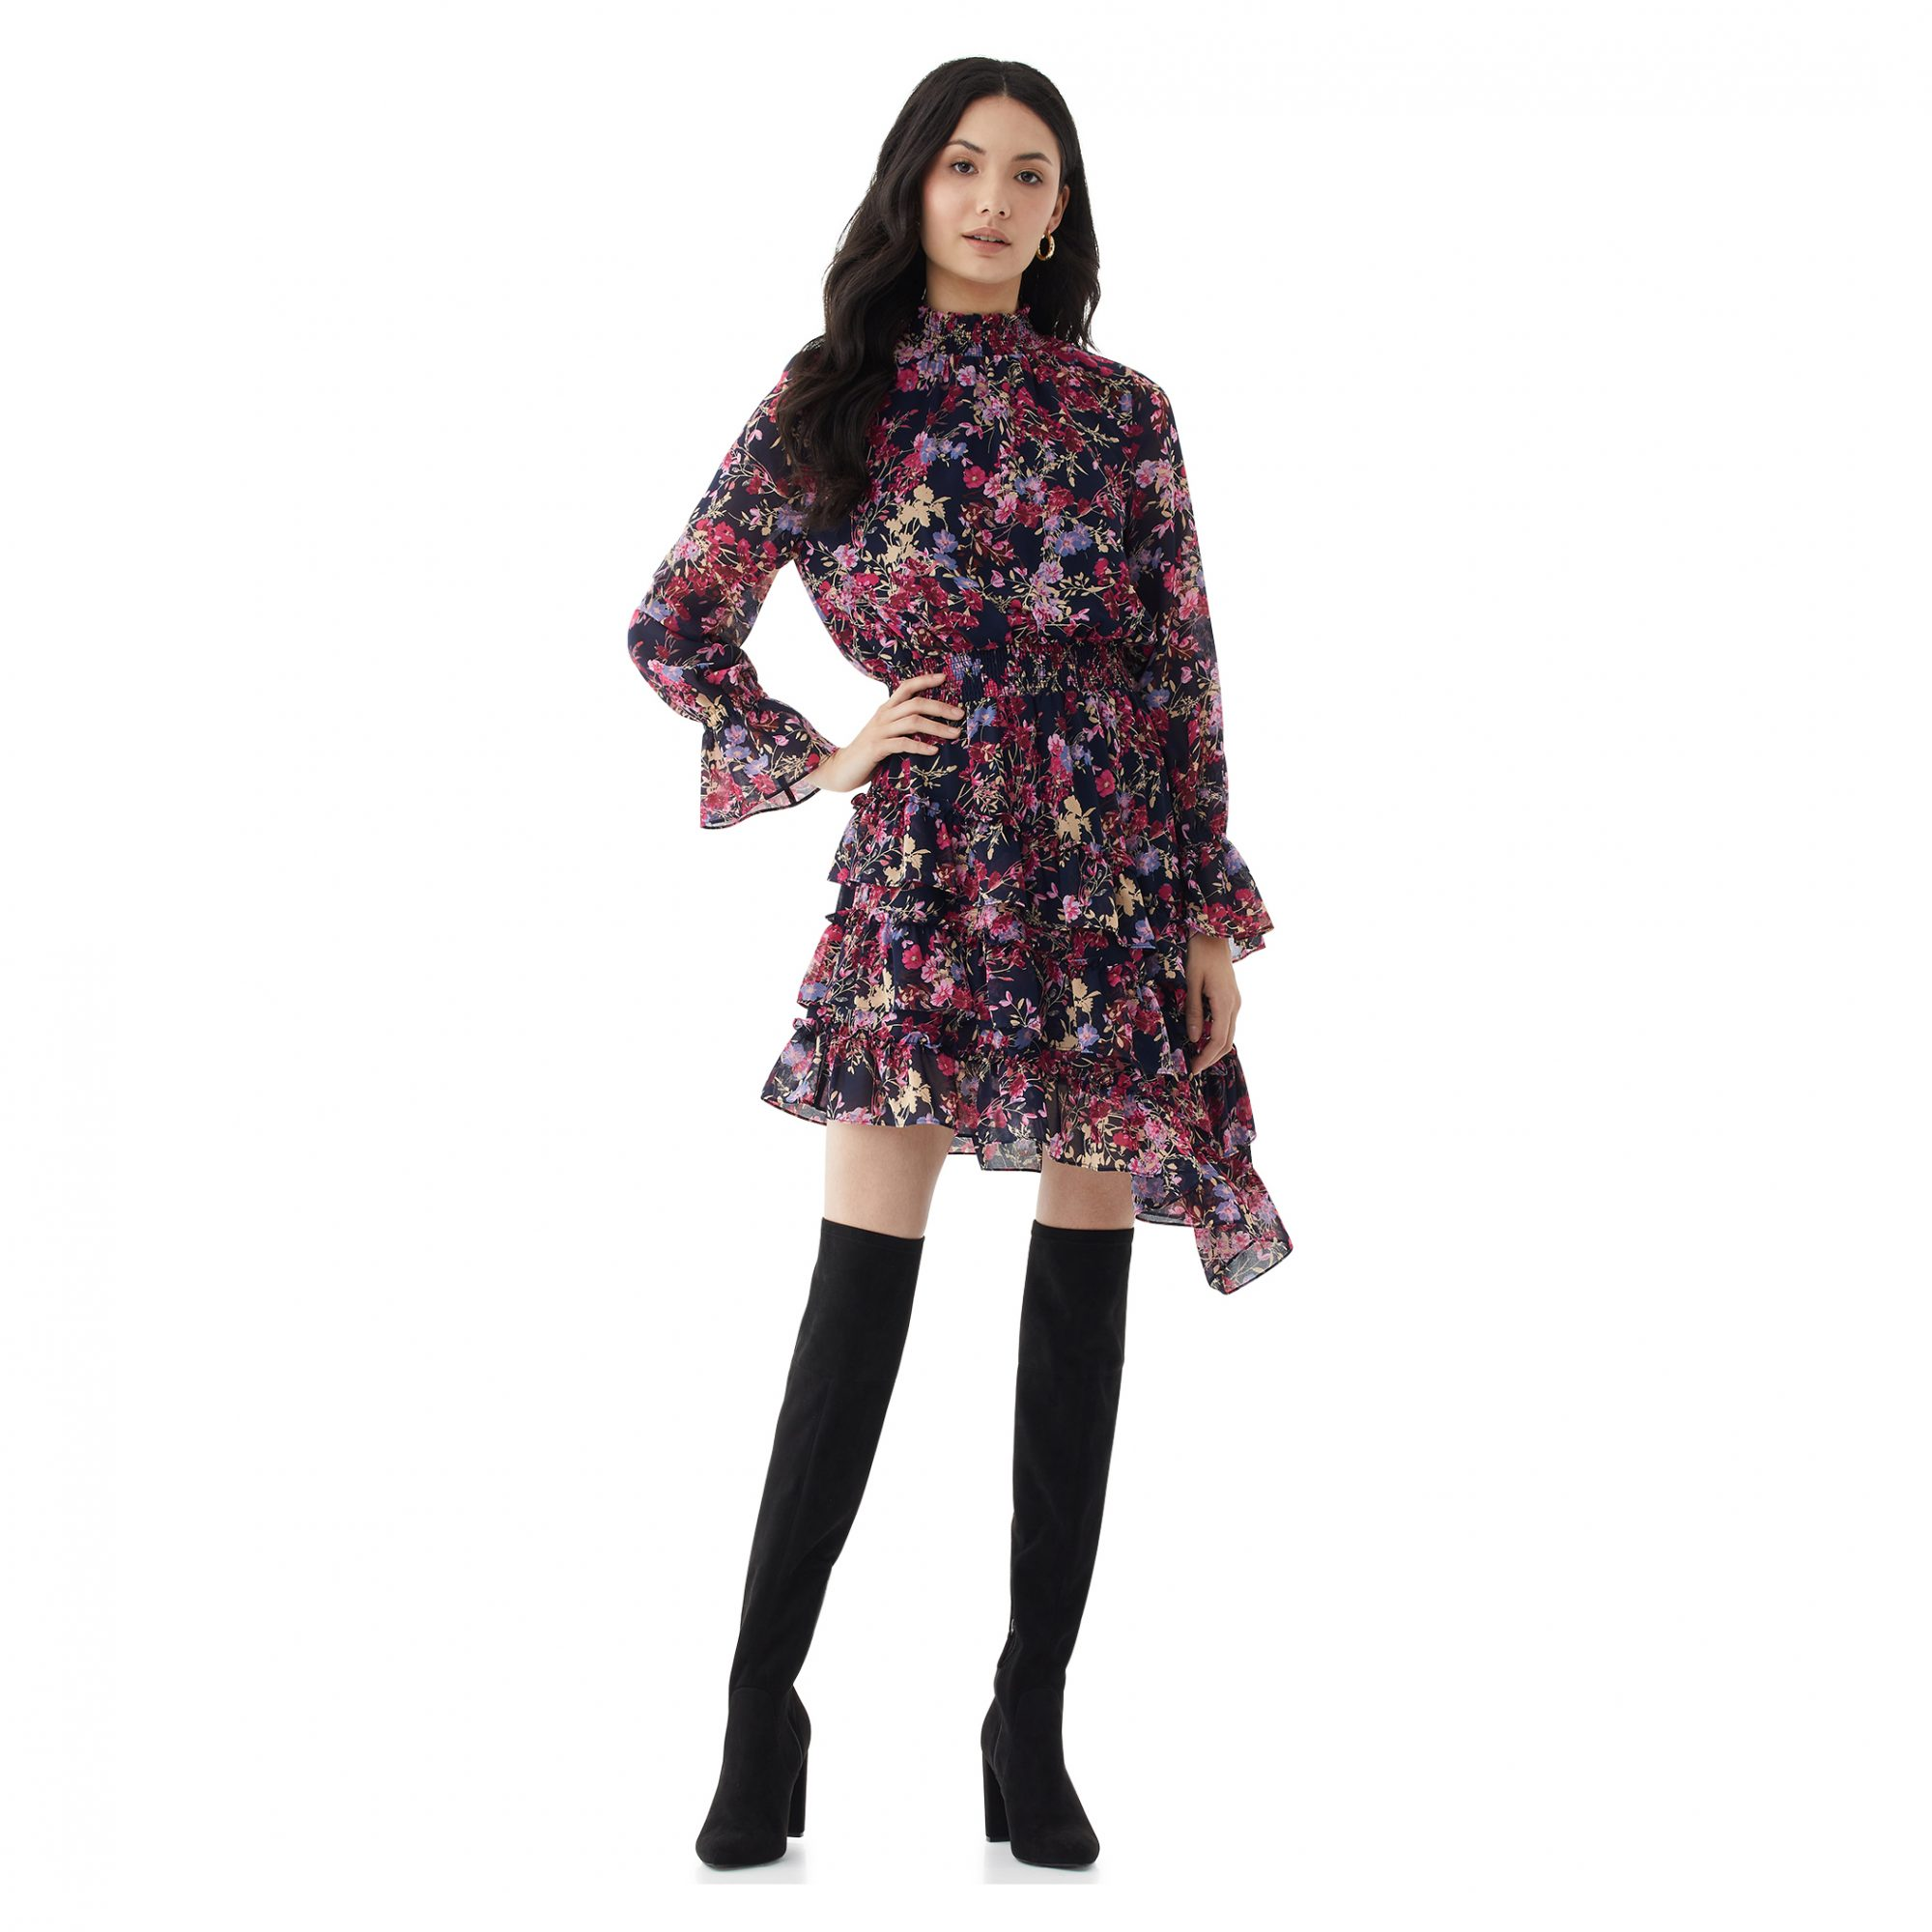 Scoop Women's Floral Print Dress with Asymmetric Ruffled Hem